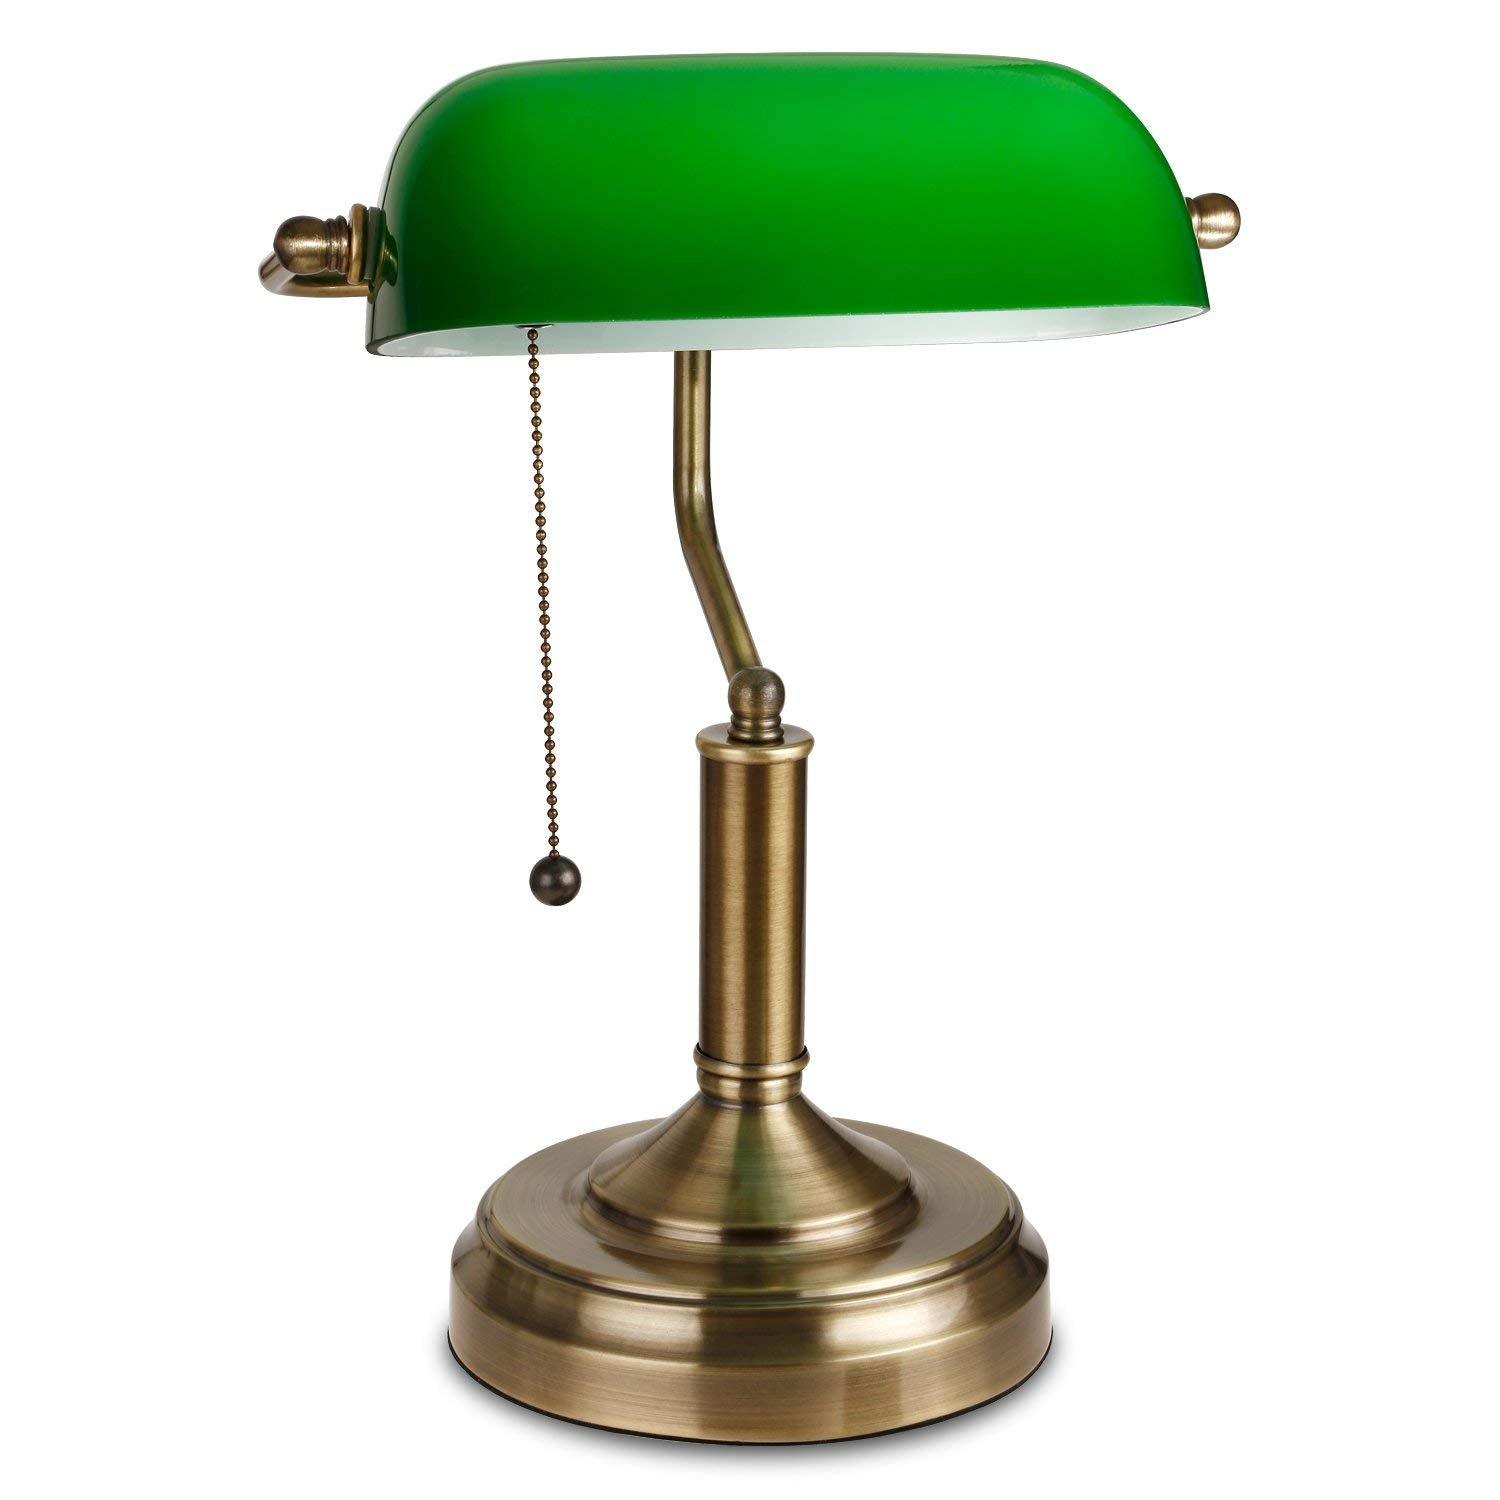 TORCHSTAR Traditional Banker's Lamp, Antique Style Emerald Green Glass Desk Light Fixture, Satin Brass Finish, Metal Beaded Pull Cord Switch Attached HJDEK-60WBRZ-GRNG